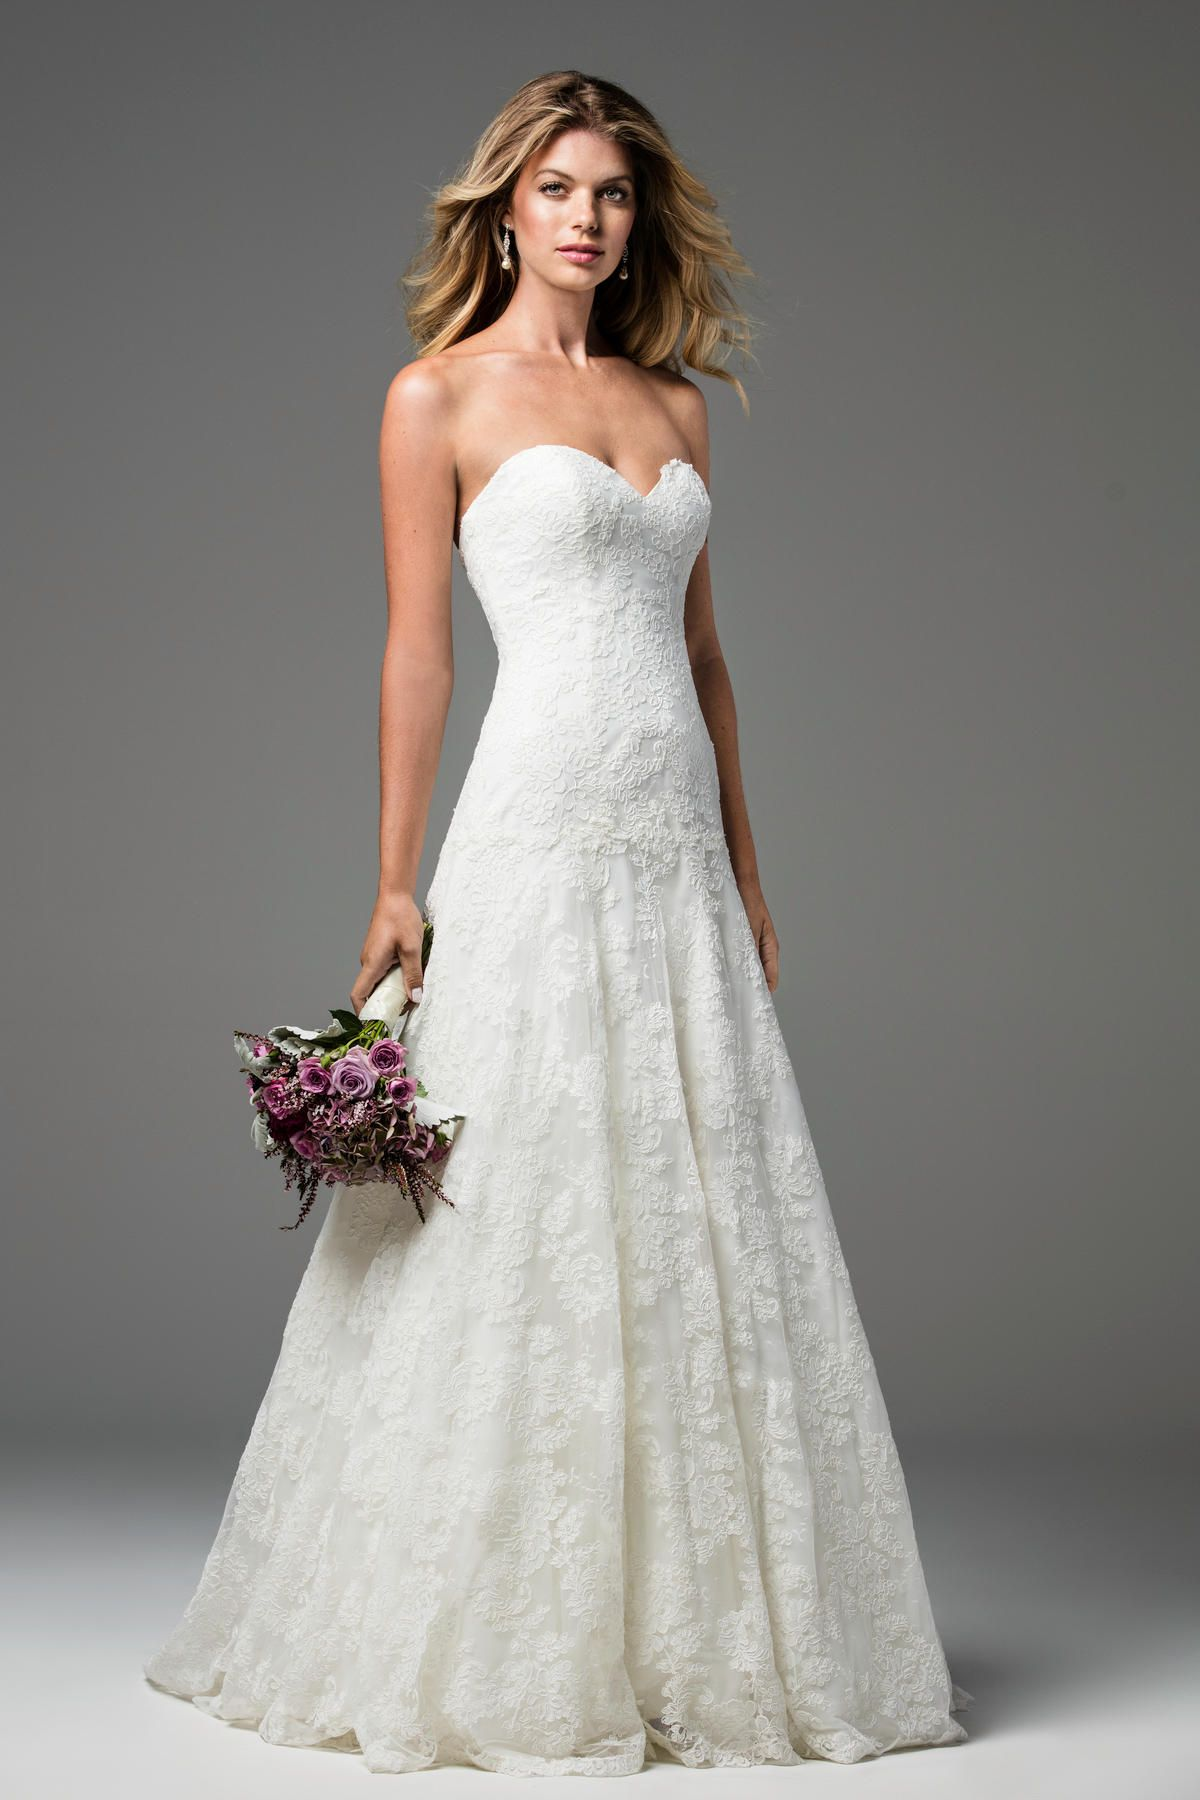 Soleil 18122 brides wtoo by watters wedding pinterest this beautiful wtoo gown is available now at ella weiss wedding design in downtown springfield missouri ombrellifo Image collections